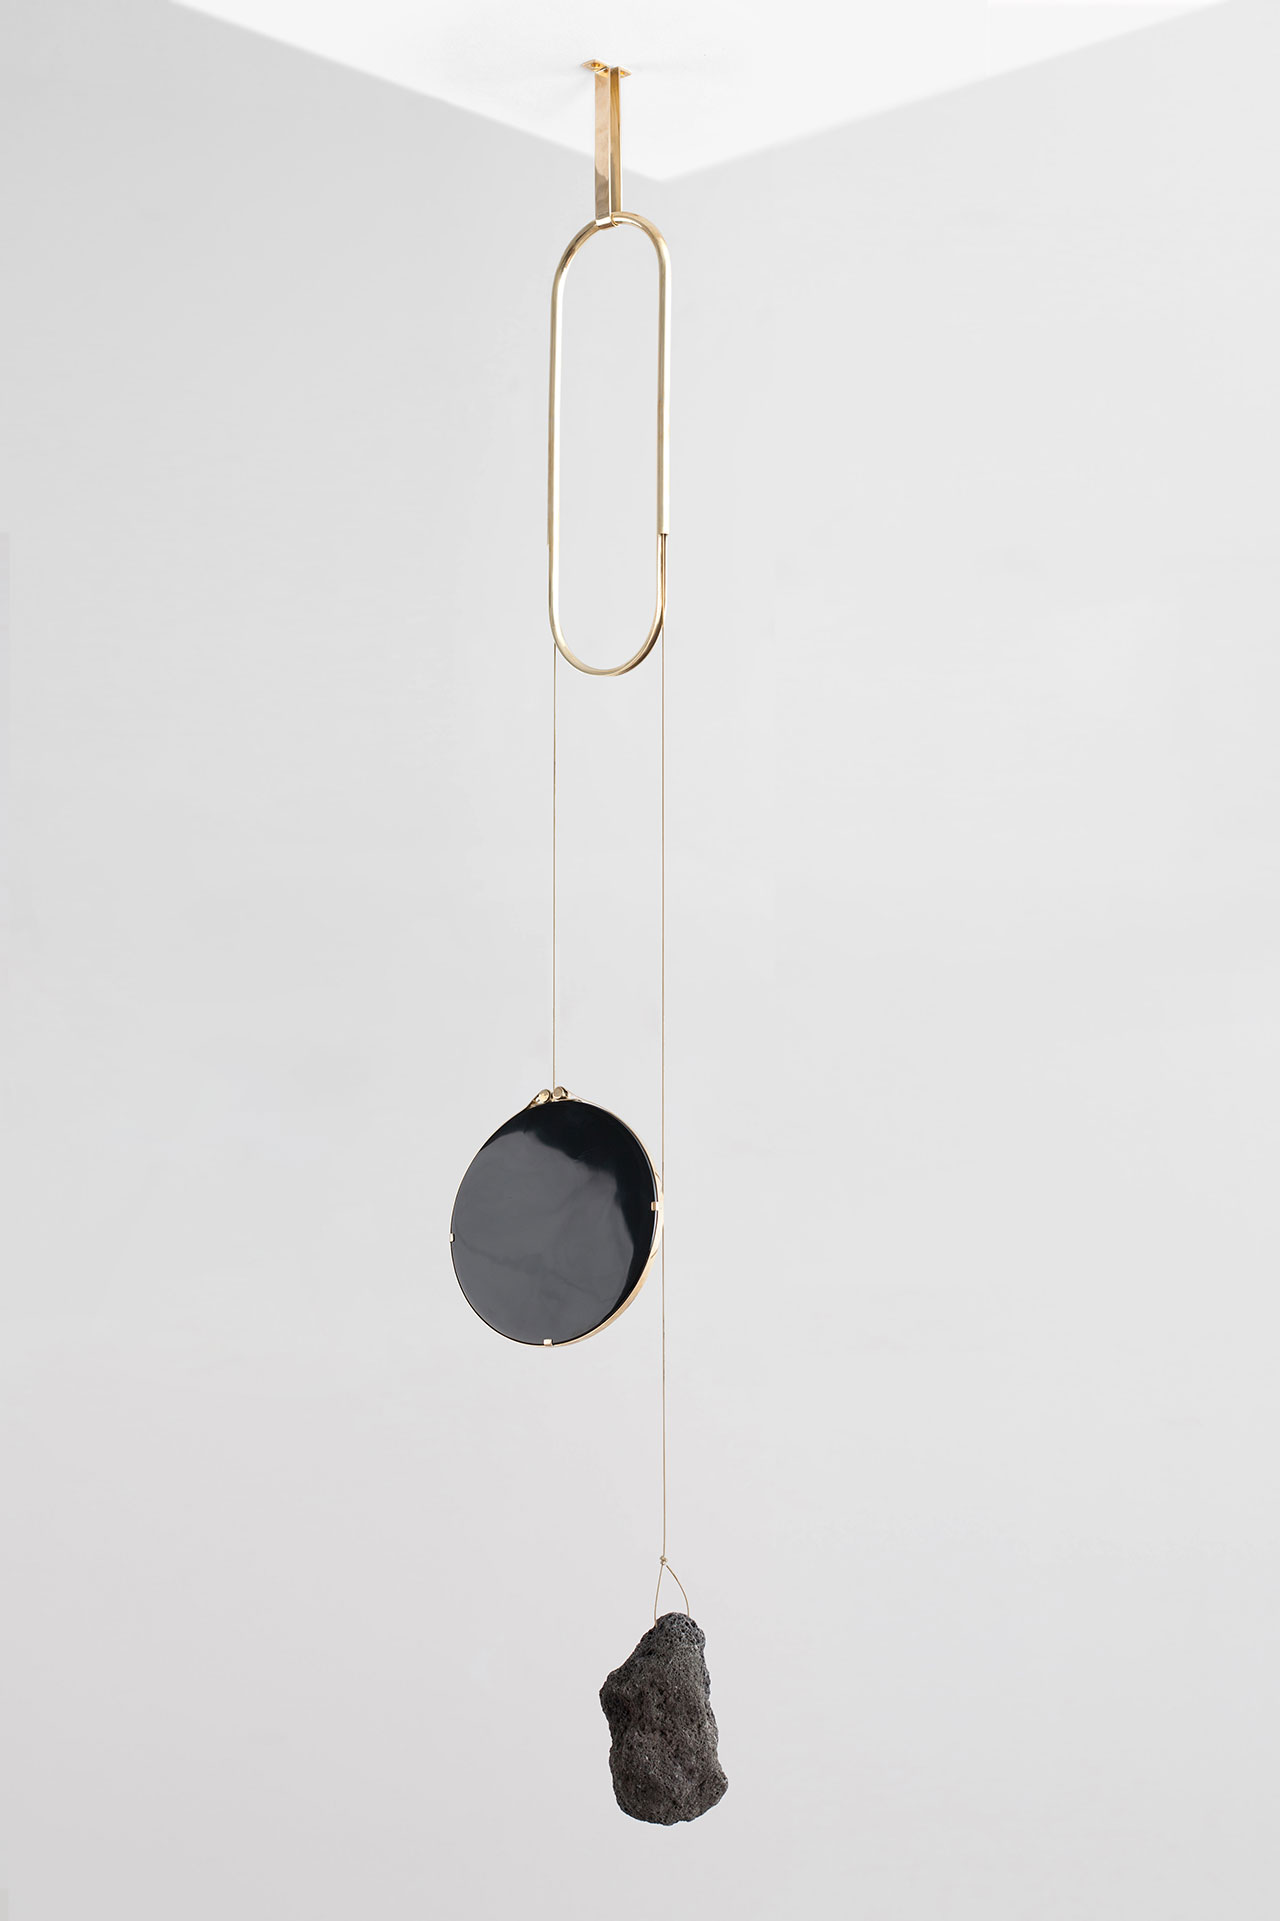 Formafantasma: Andrea Trimarchi and Simone Farresin for Gallery Libby Sellers, Iddu mirror, from De Natura Fossilium collection, 2014, Obsidian mirror, lava rock, brass. © Studio FormaFantasma.